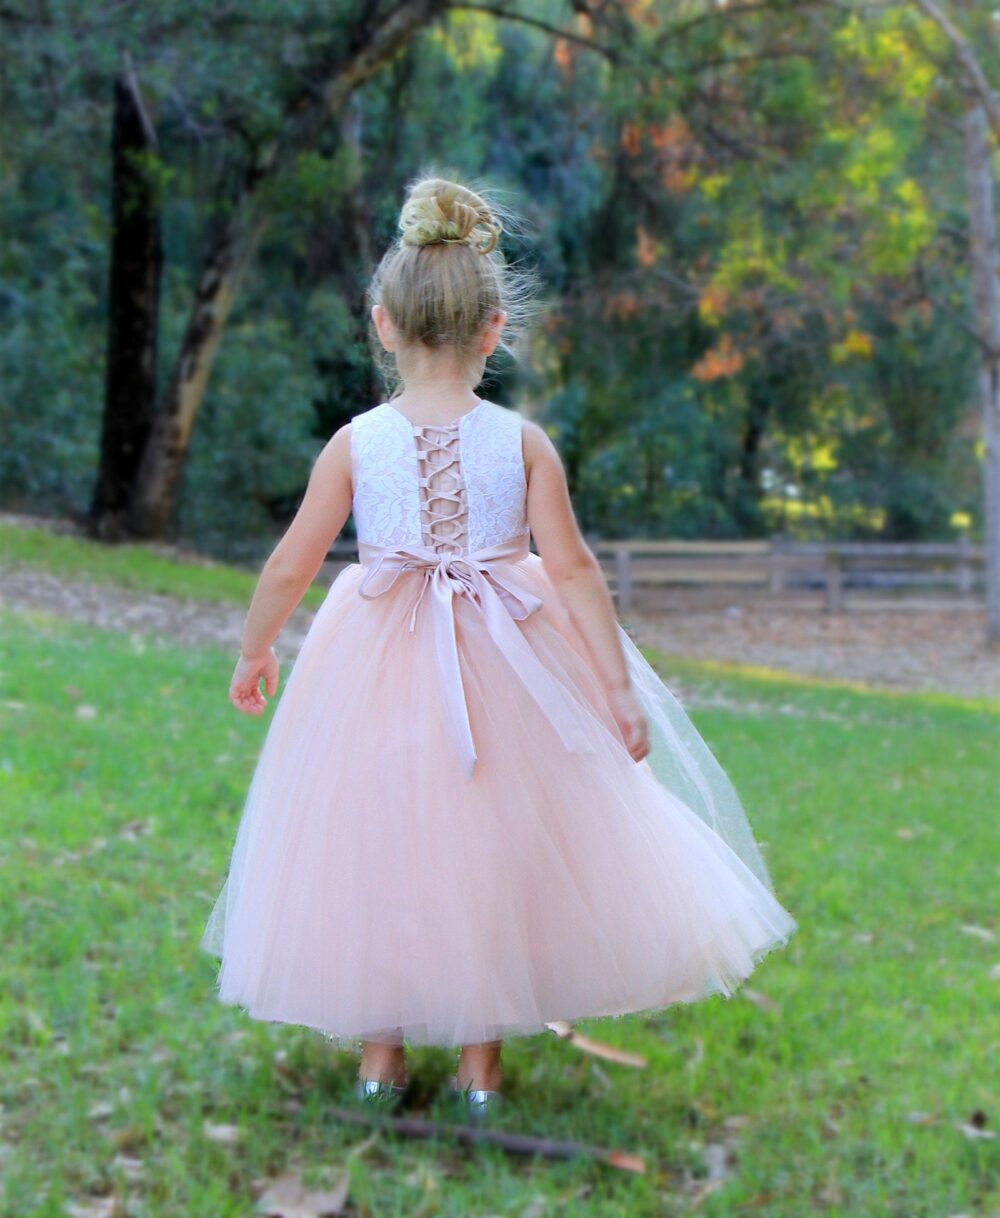 Tutu Tulle Floral Lace Pageant Girl Dress Wedding Flower Girl Dress Marine Blue Burgundy Peach Red Royal Lilac Purple Silver Coral White New